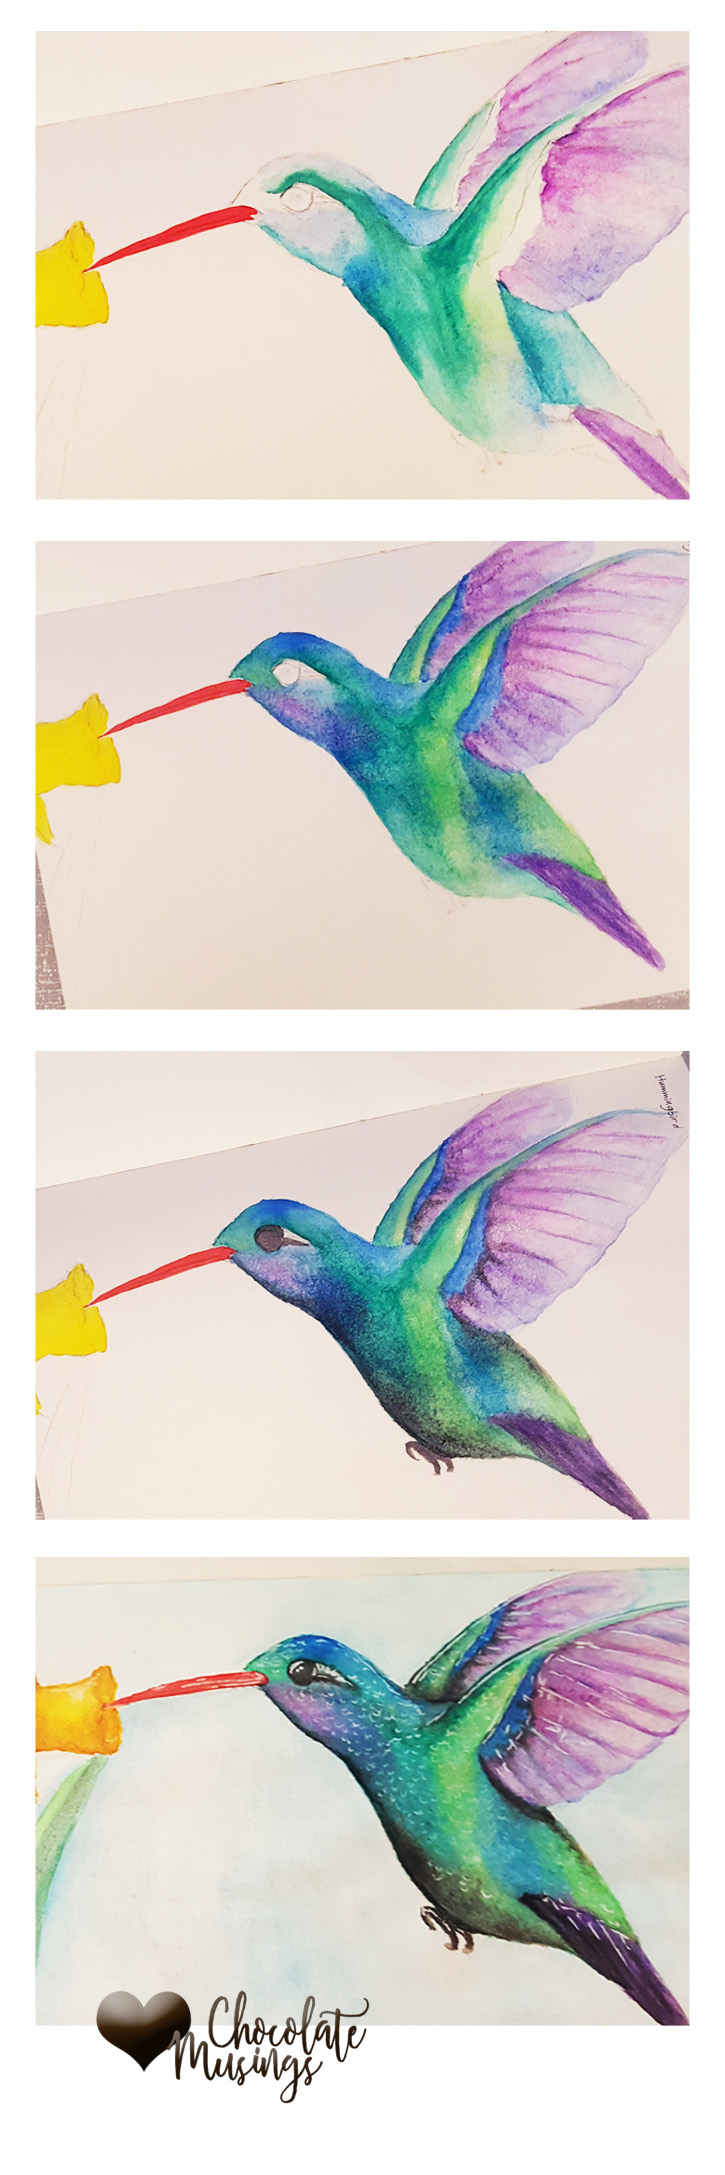 Hummingbird watercolor painting progression